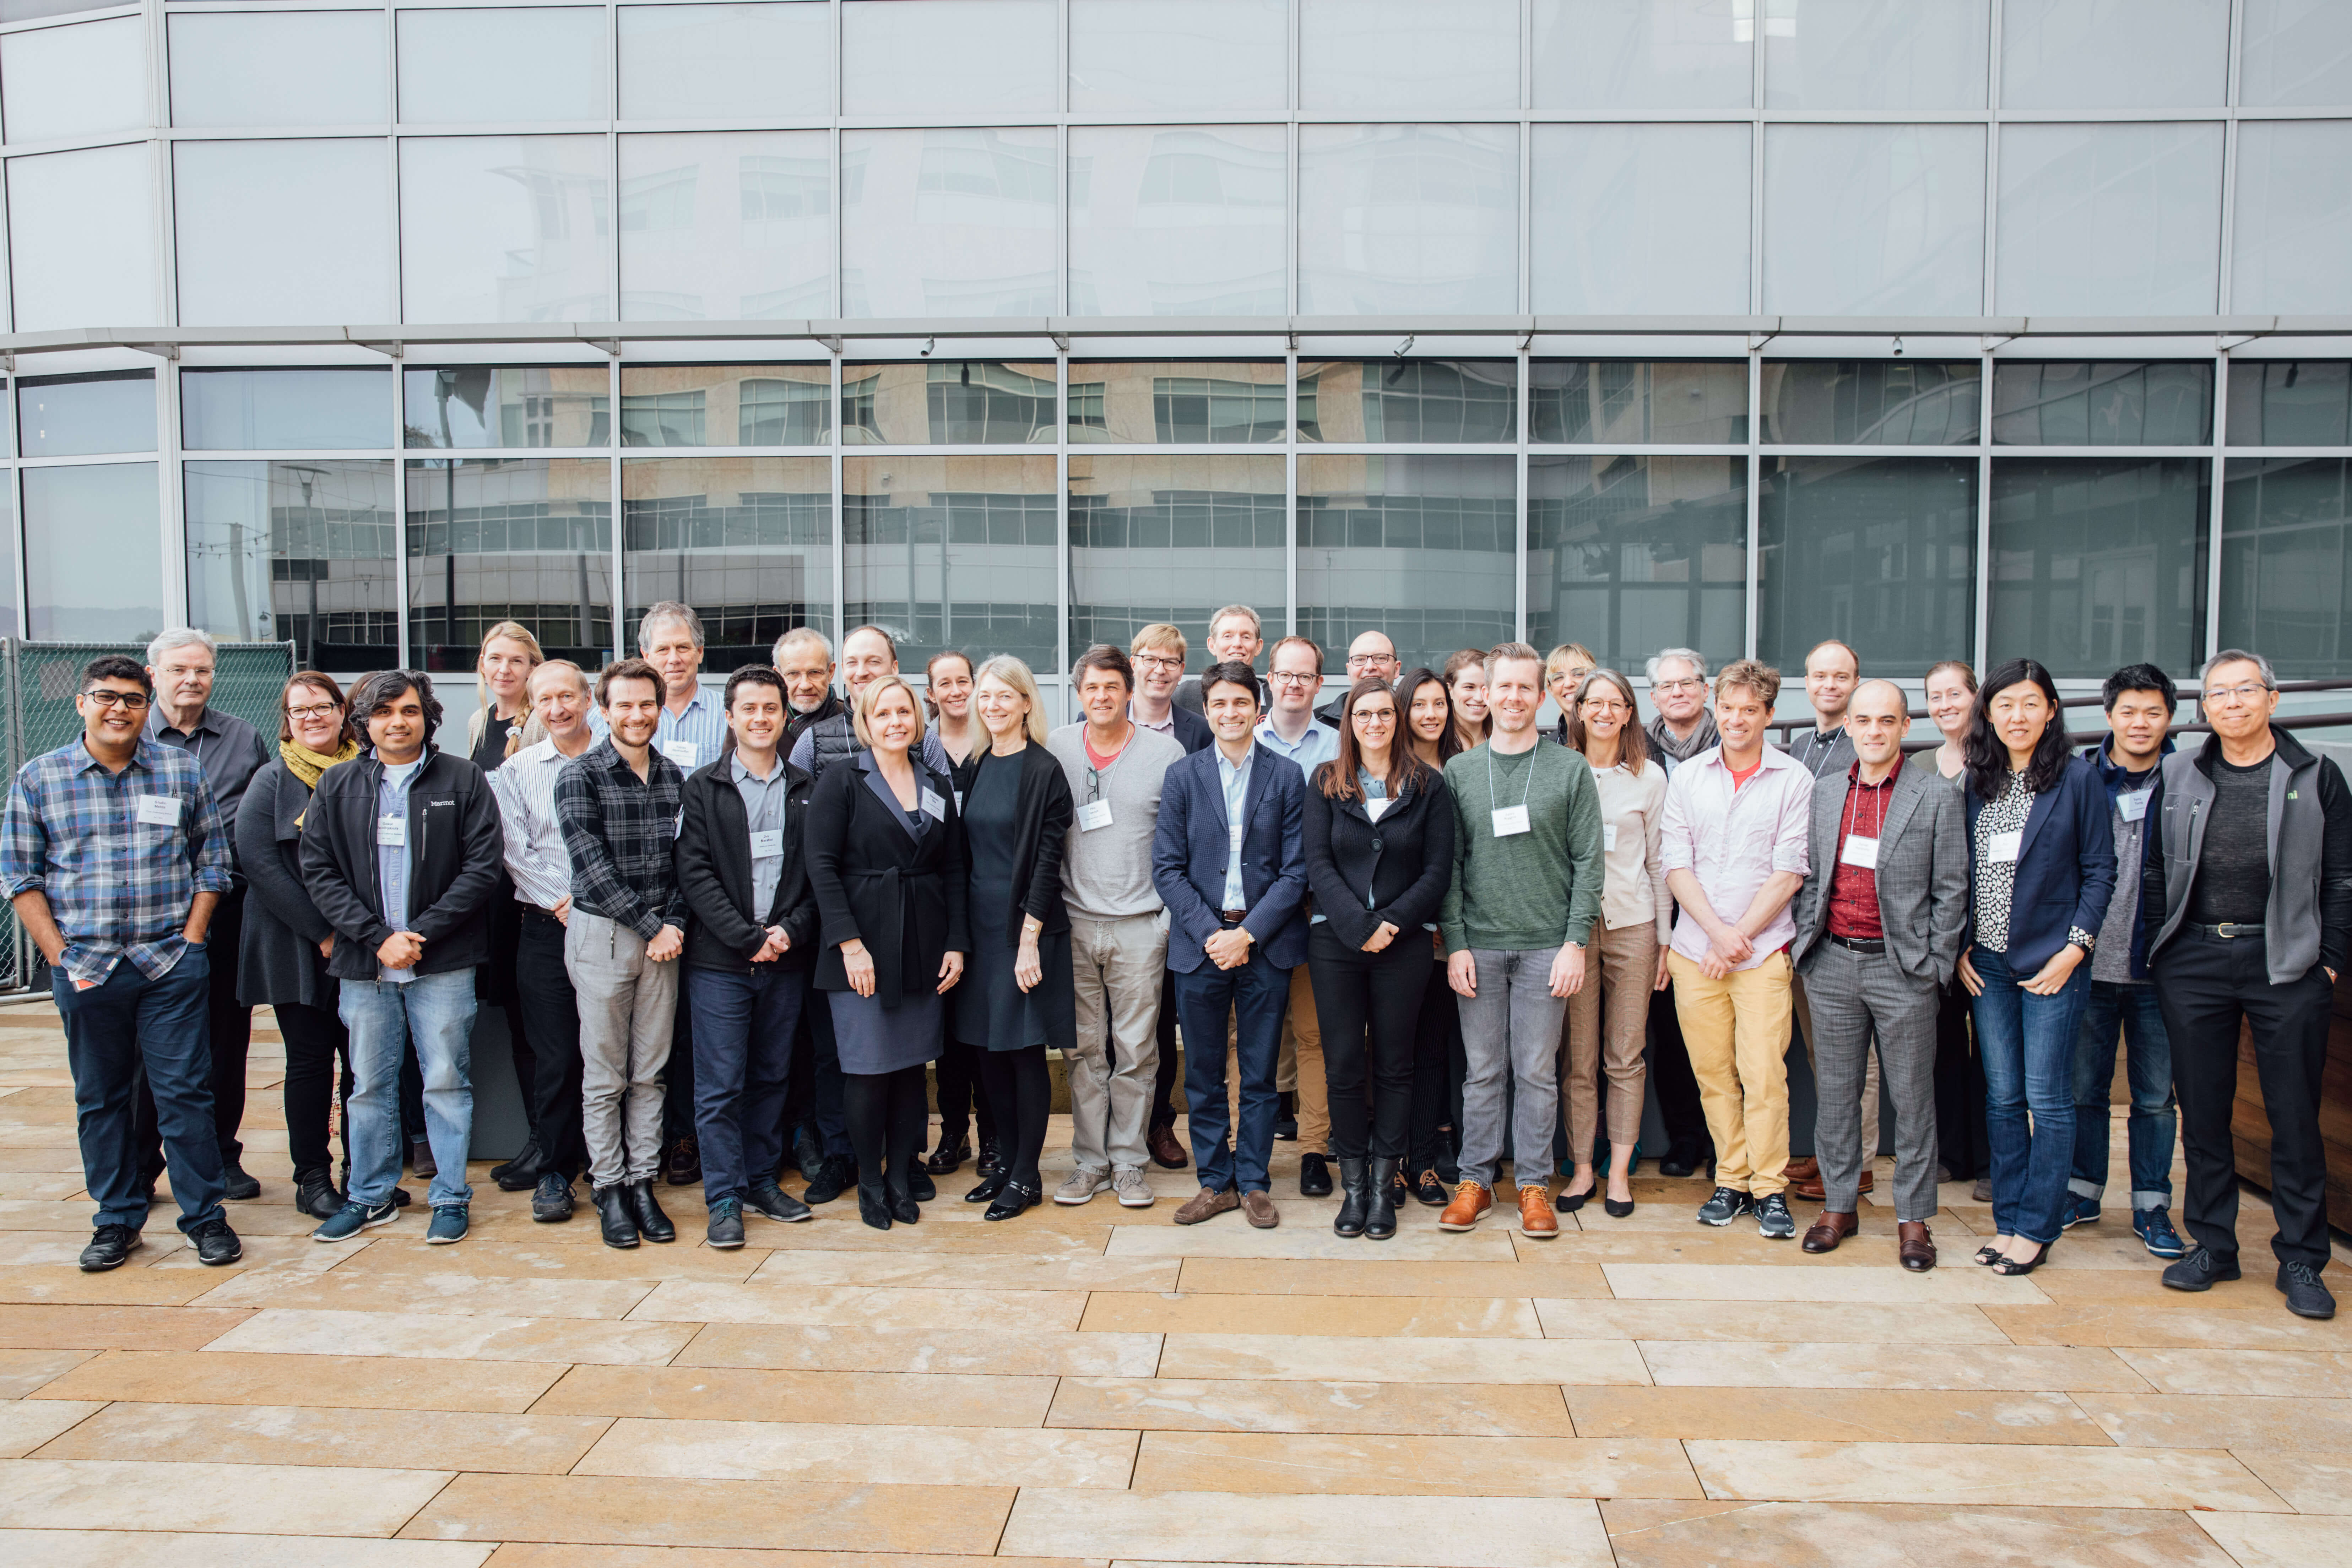 A group of attendees at the CZI Frontiers of Imaging workshop pose for a photo